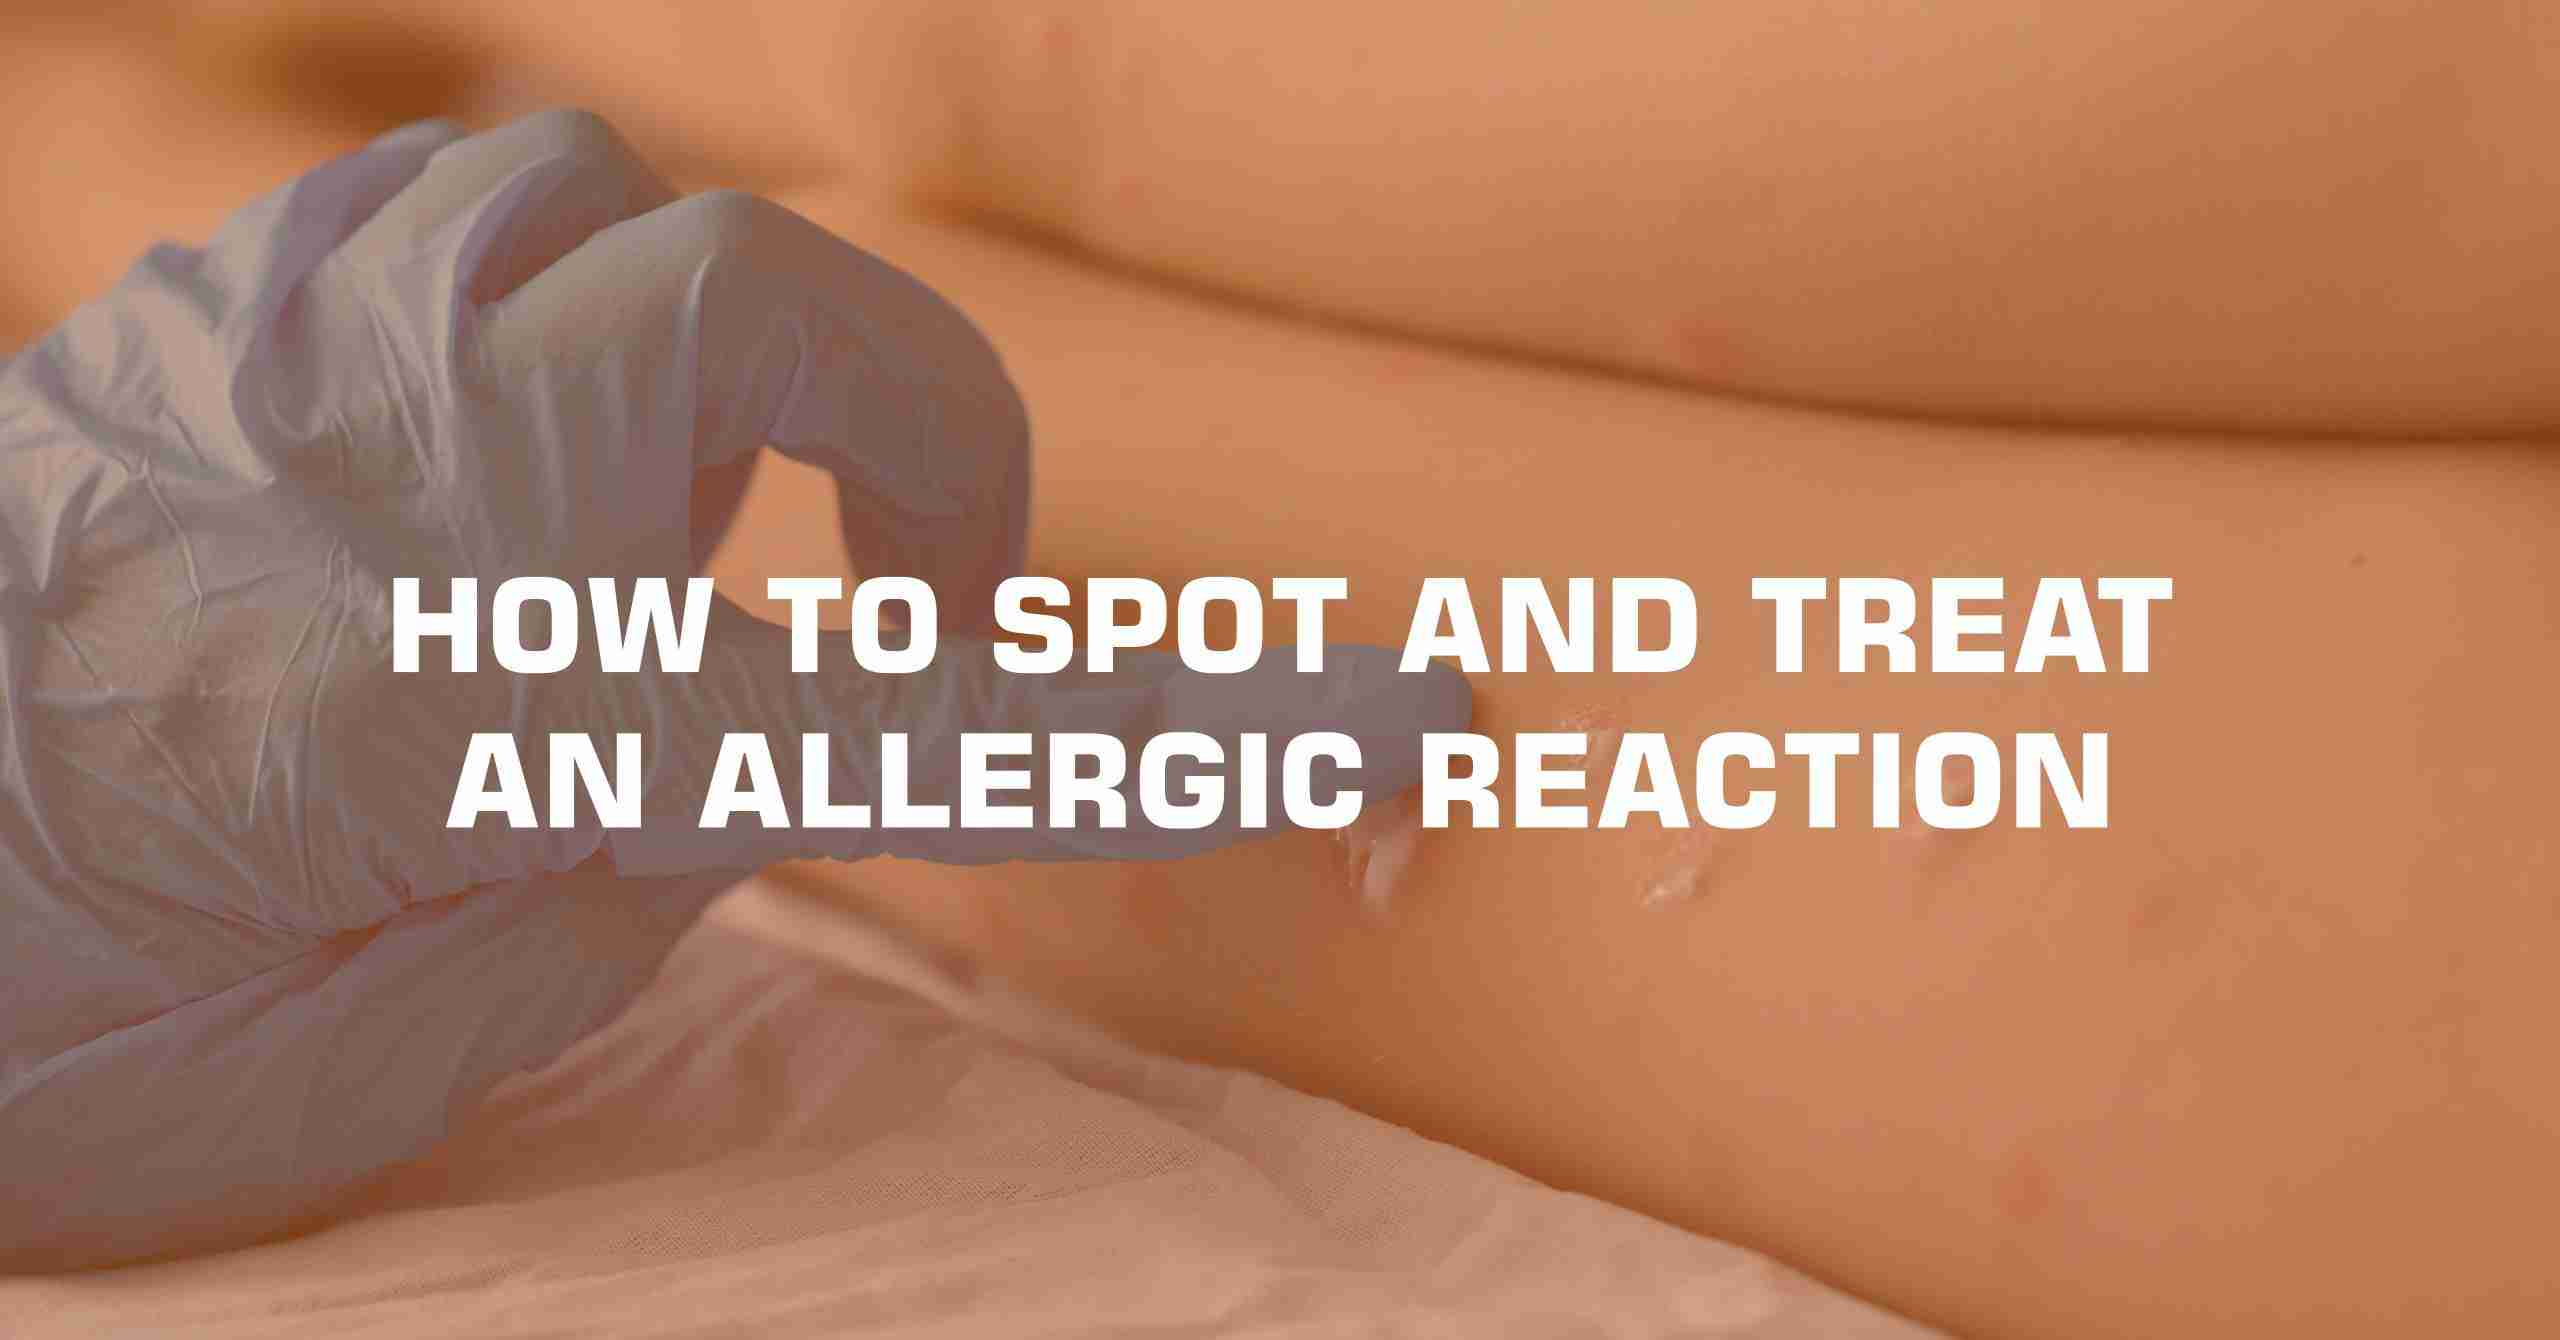 HOW TO SPOT AND TREAT AN ALLERGIC REACTION min scaled